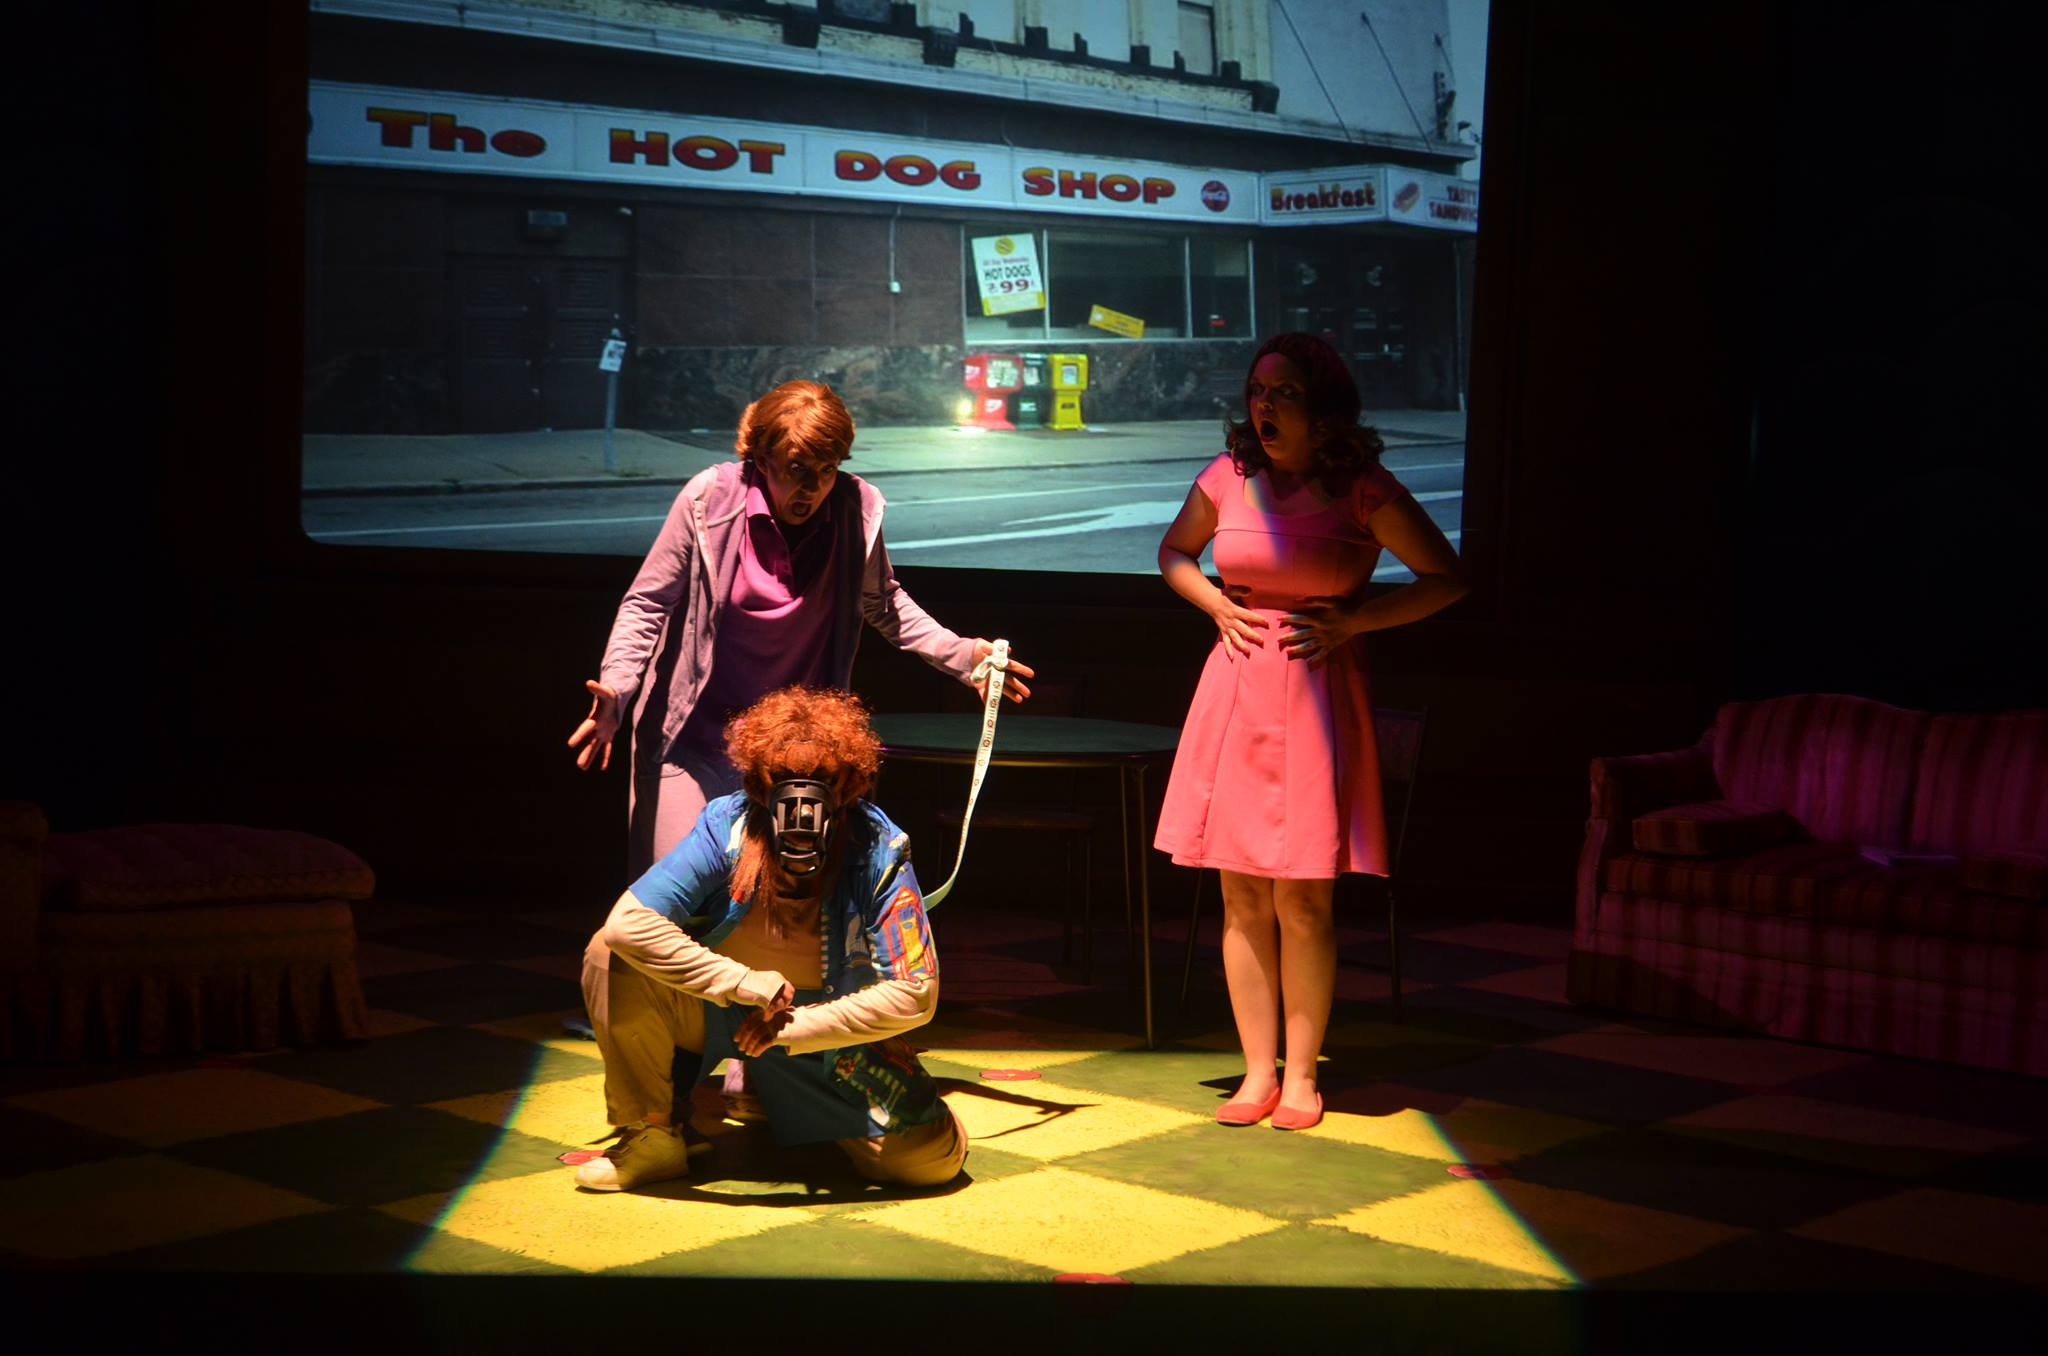 Hot Dog's USA Premiere withThinking Cap Theatre at Nova Southeastern University in Ft. Lauderdale, FL plays from 16 May - 1 June 2014